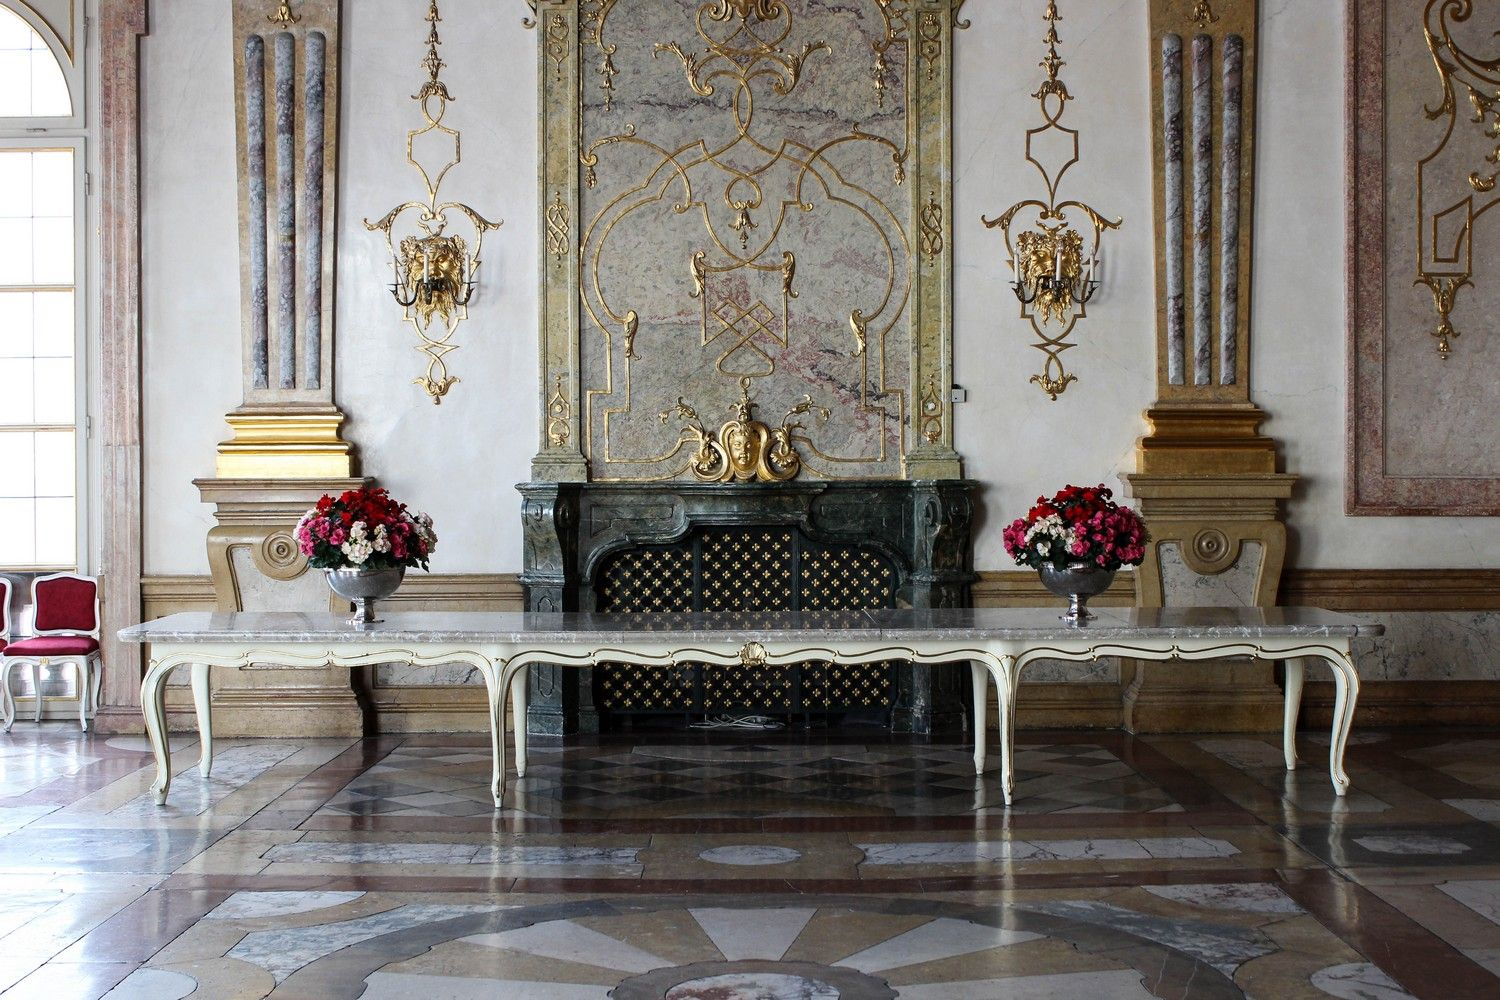 De Marble Hall in Schloss Mirabell